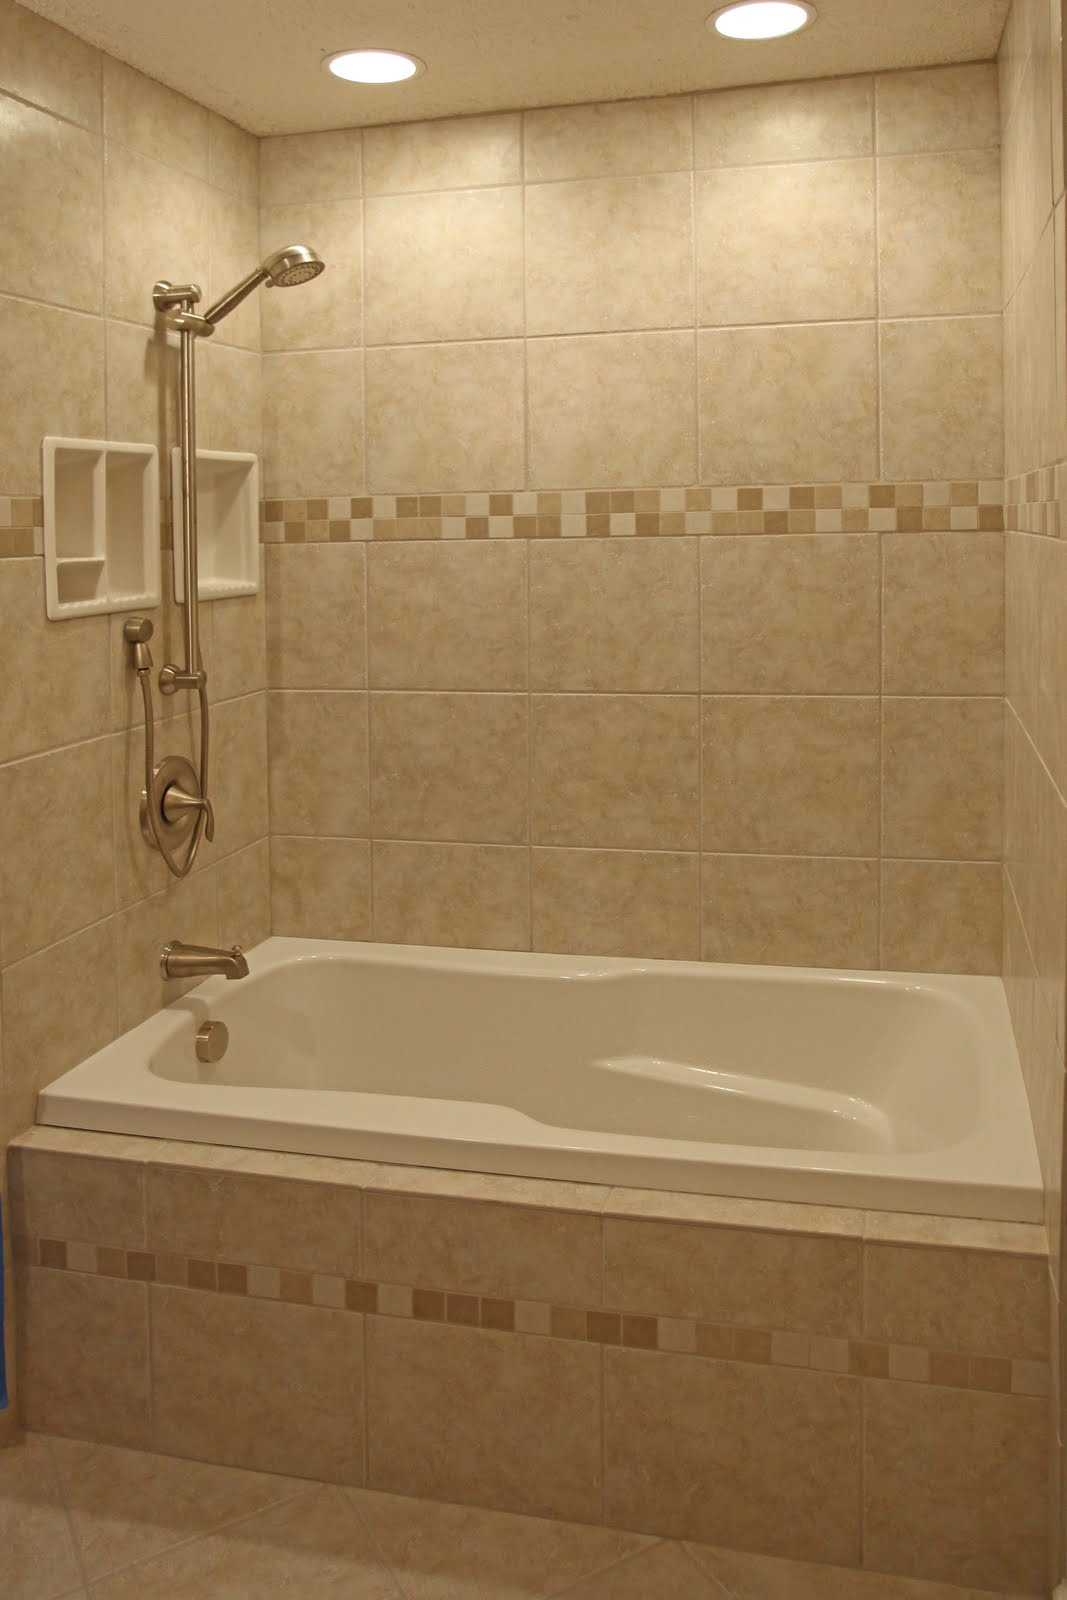 Bathroom remodeling design ideas tile shower niches for Bathroom ceramic tile design ideas